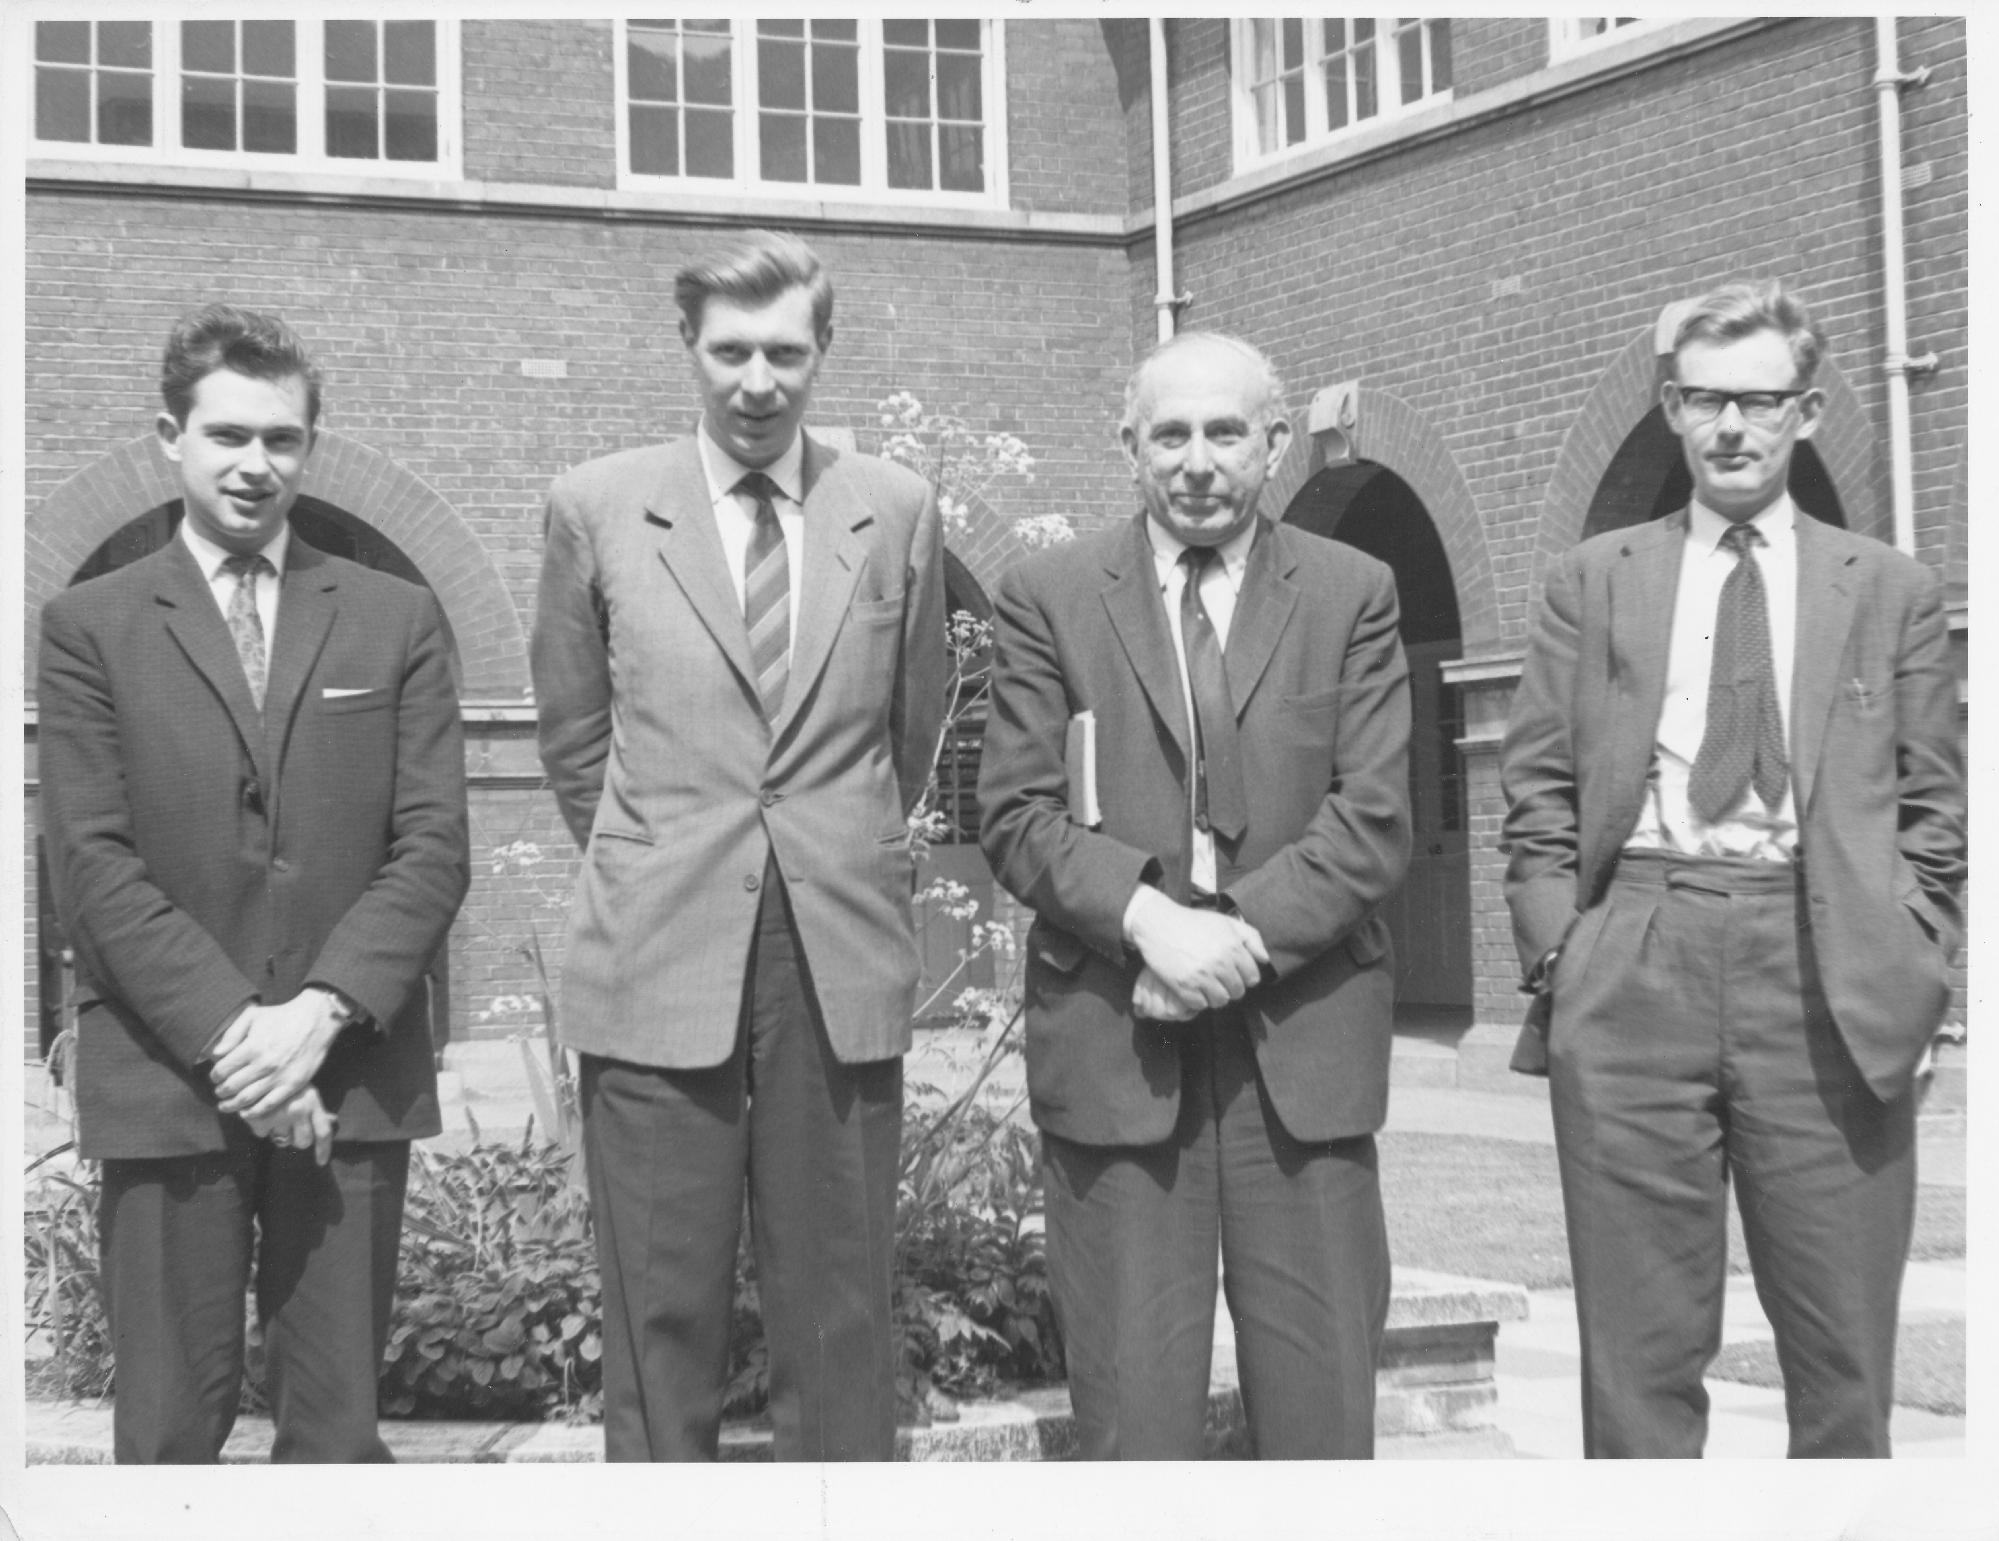 Two thirds of the BCF team for the 1964 Tel Aviv Olympiad. : Owen Hindle, Michael Franklin, Harry Golombek and Michael Haygarth